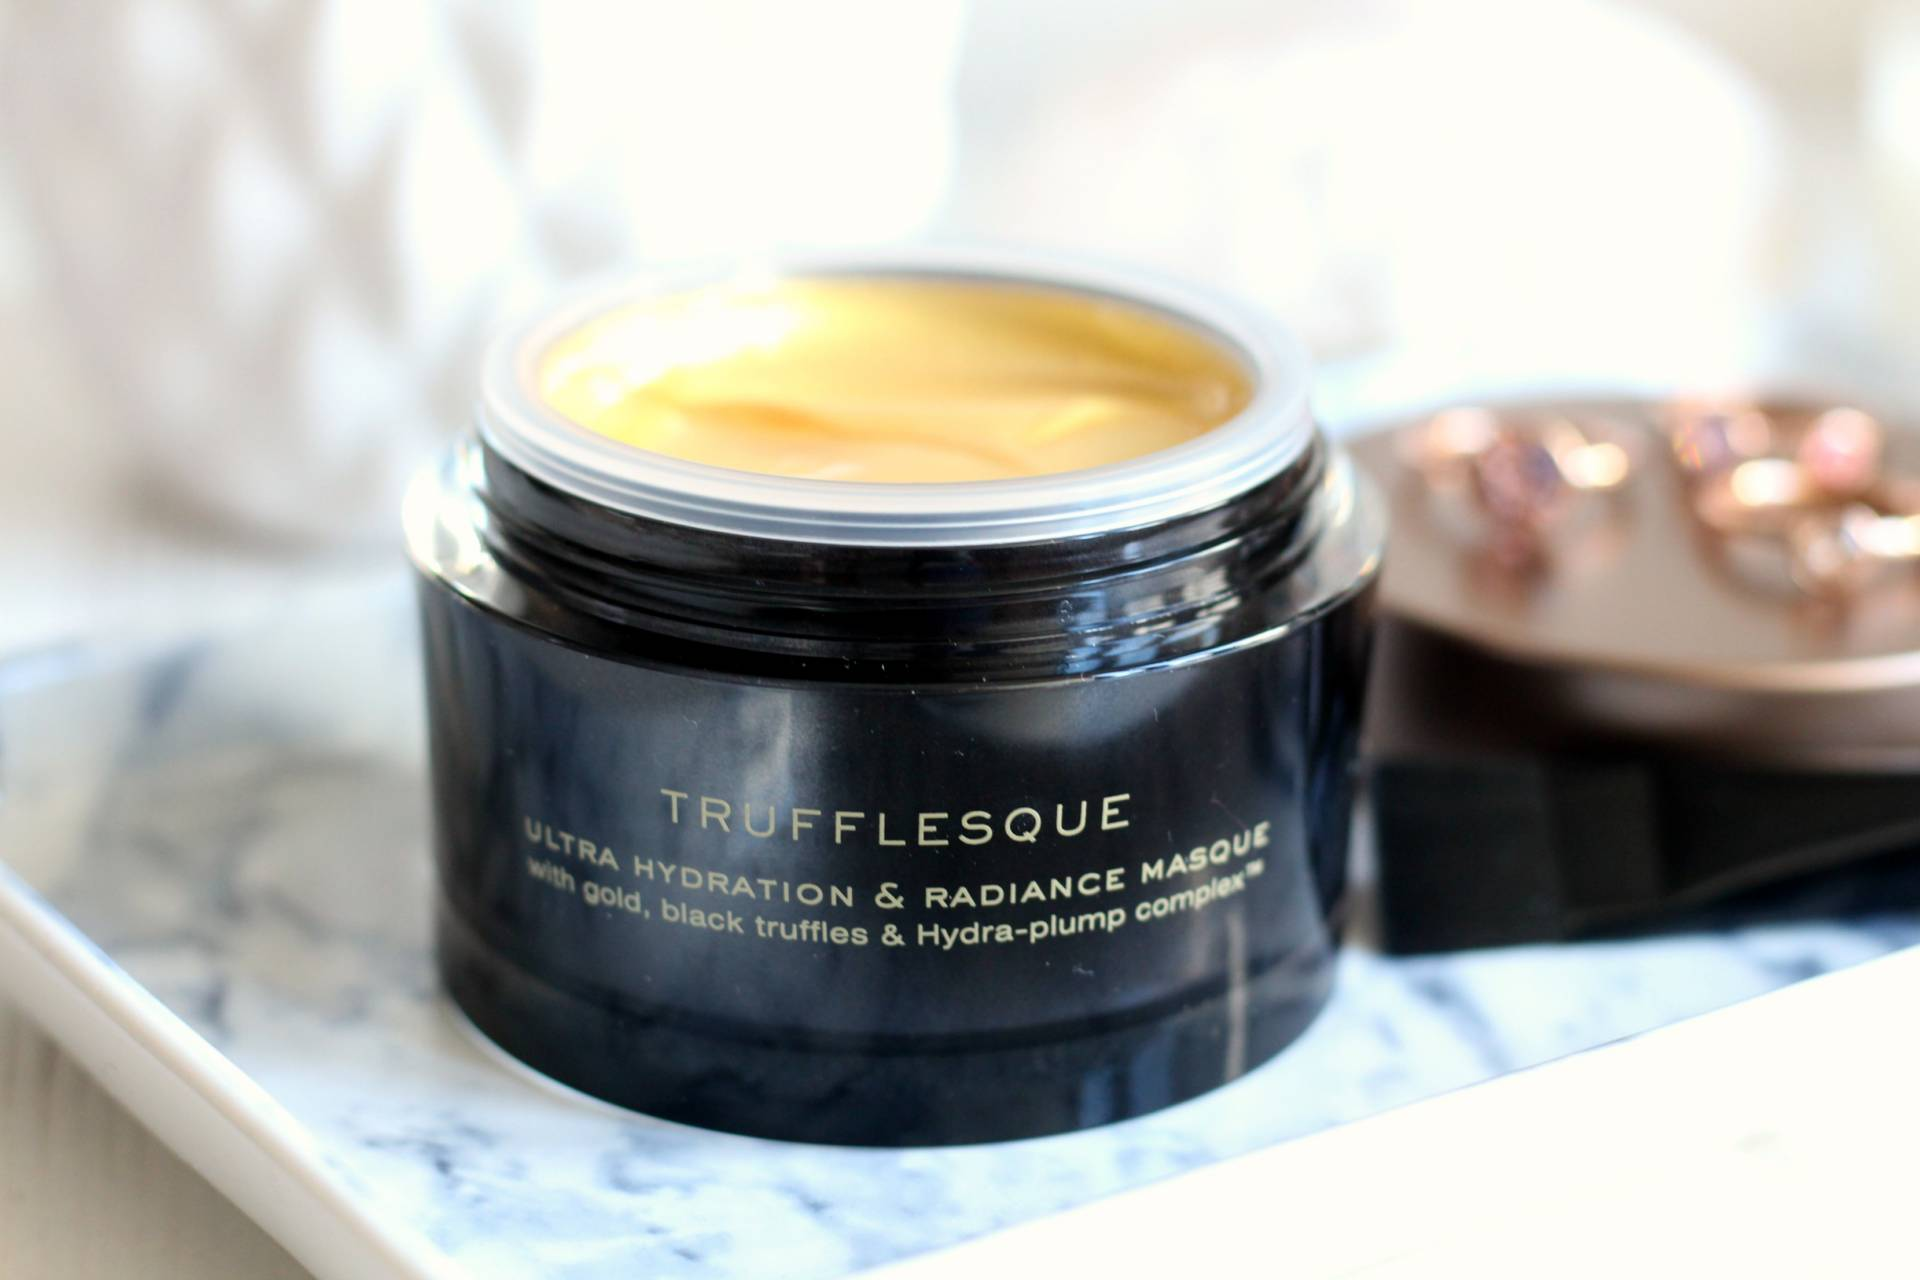 A new luxury face mask to try